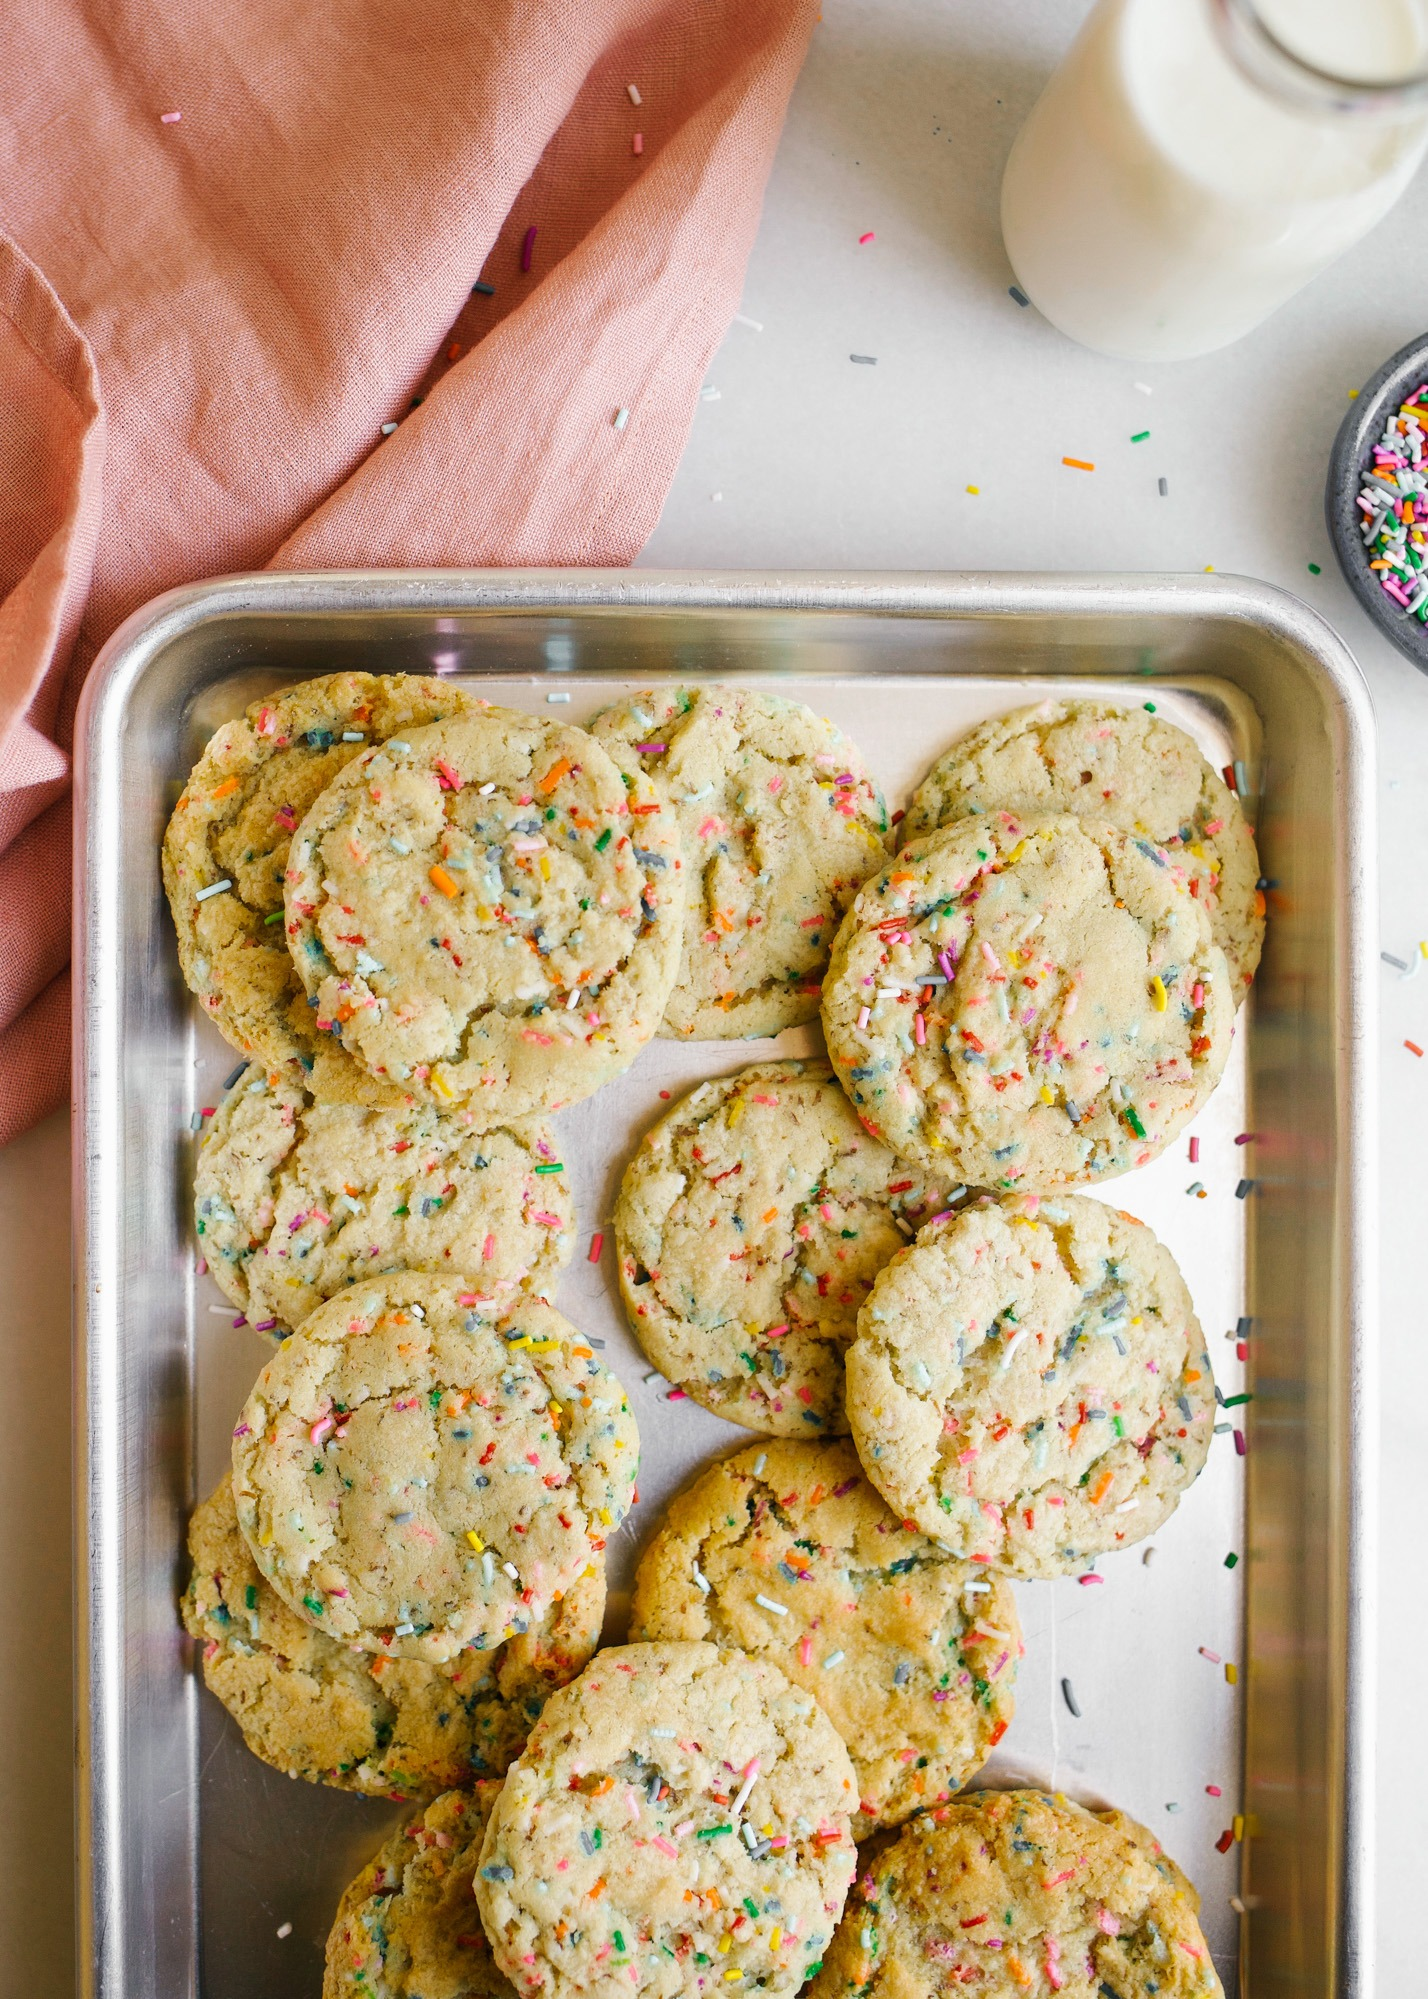 Vegan Funfetti Cookies by Wood and Spoon by Kate Wood. These are healthier sprinkle cookies made with coconut oil and organic sugar and flour. Clear vanilla extract gives the cookies their flavor. The cookies have crinkle tops and are loaded with colorful rainbow sprinkles. Learn how to make these at home on thewoodandspoon.com